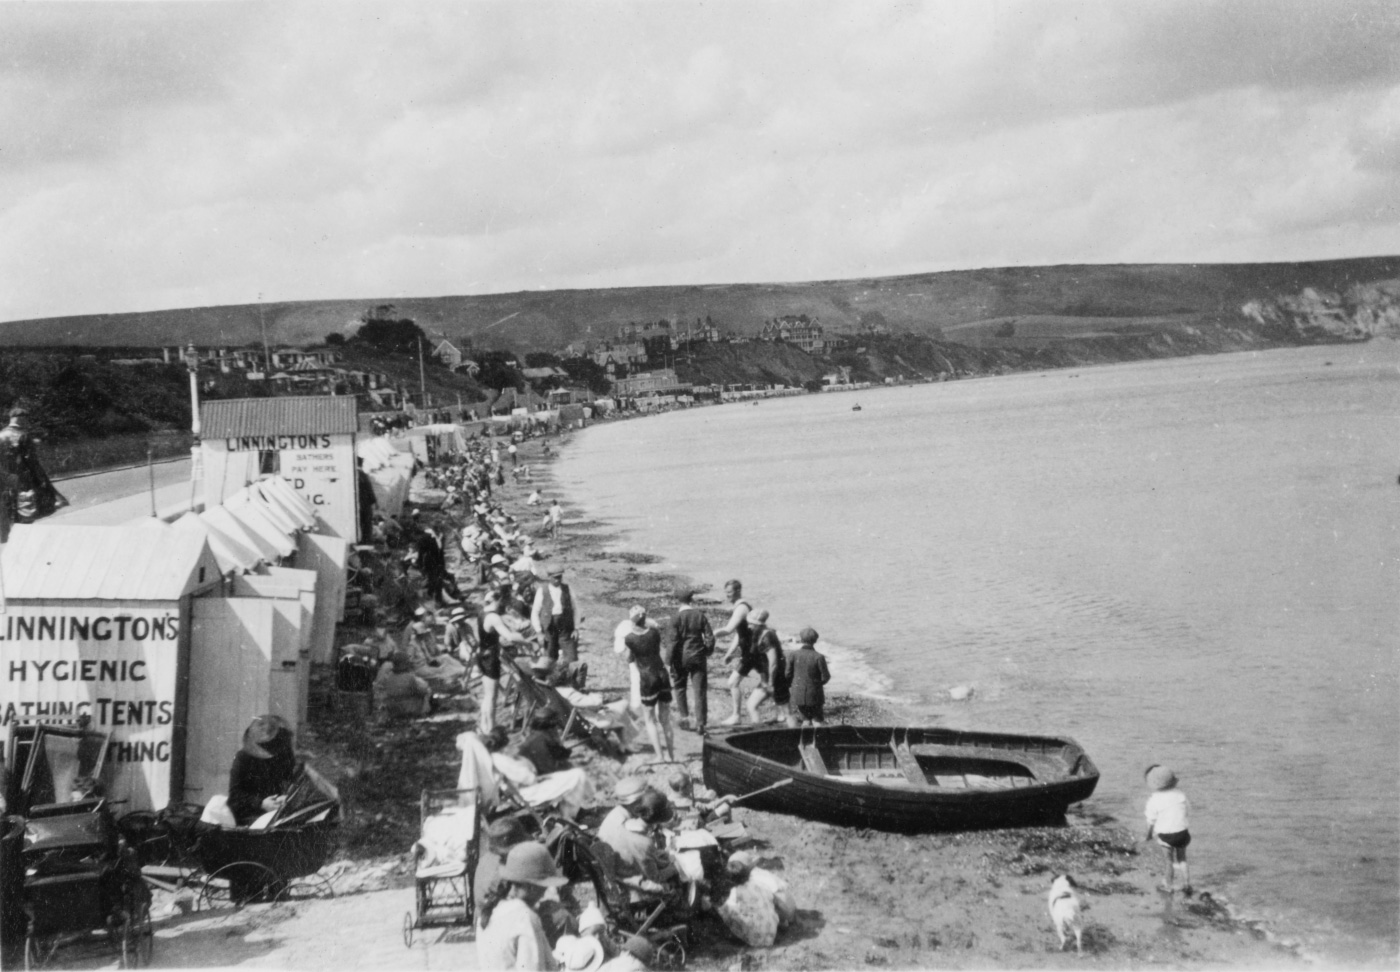 Linningtons Hygienic Bathing Tents and Beach